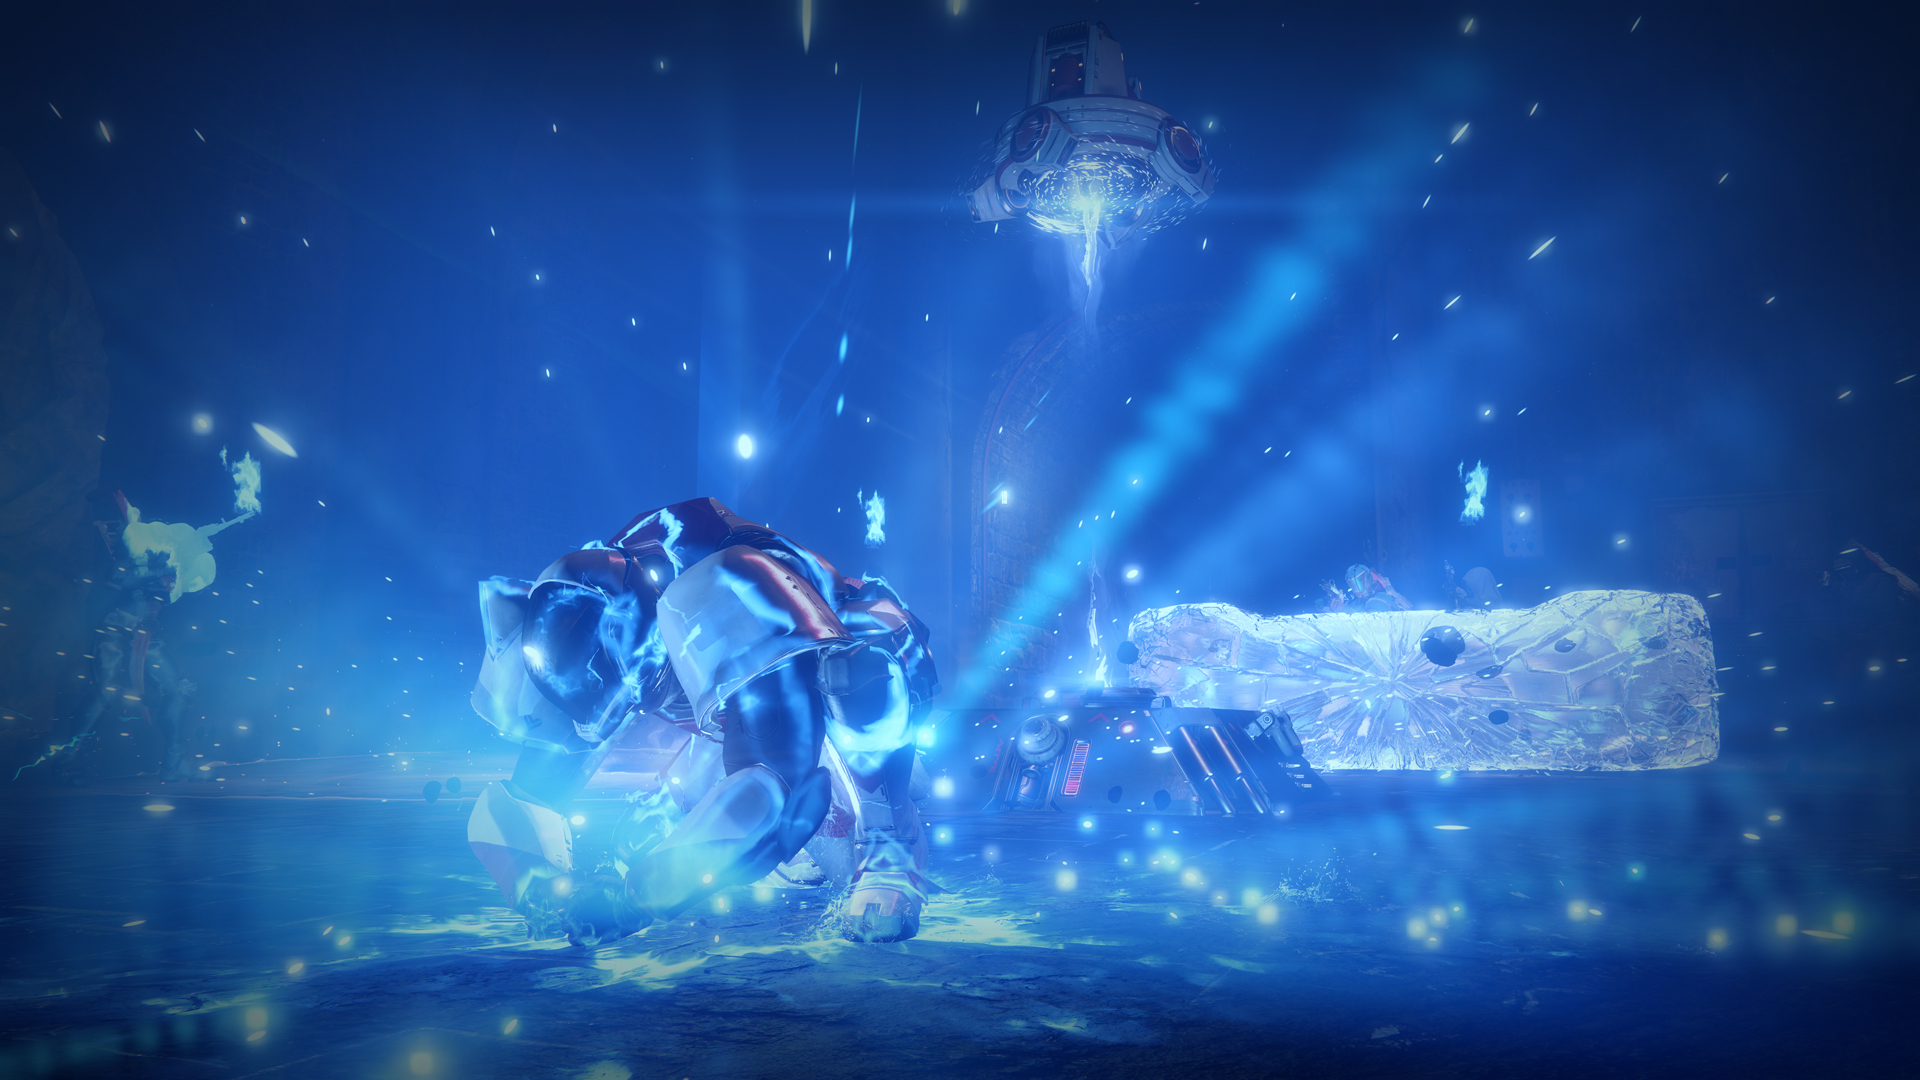 Destiny 2's Arc subclasses are getting overhauled next week